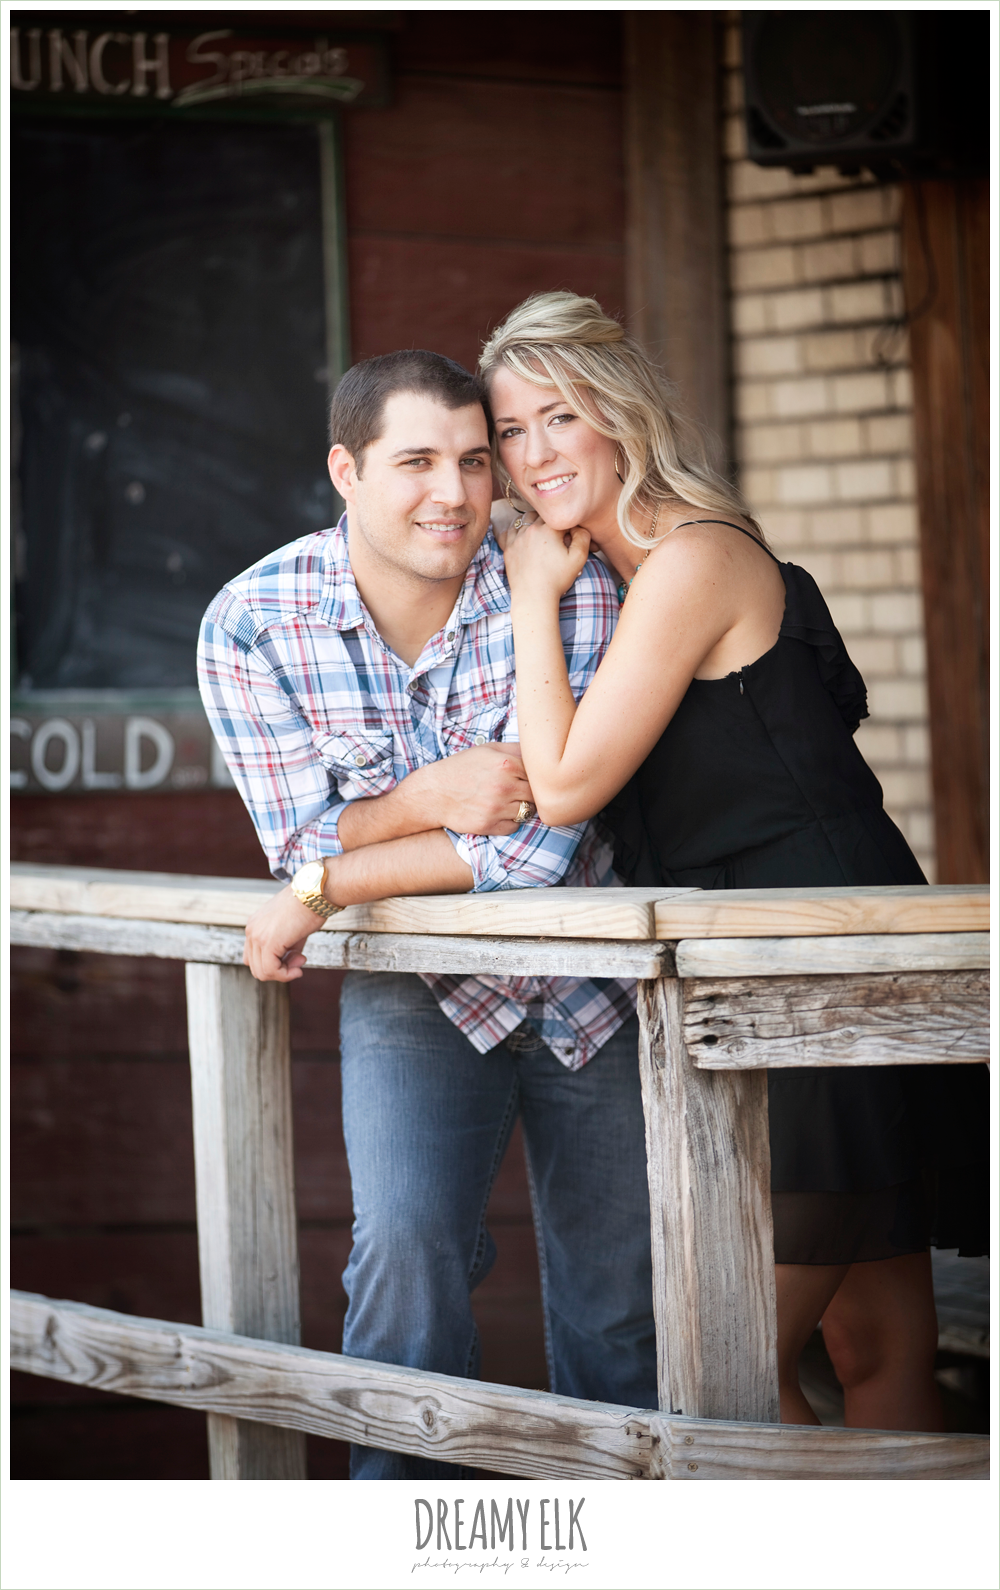 northgate, dixie chicken, engagement photo